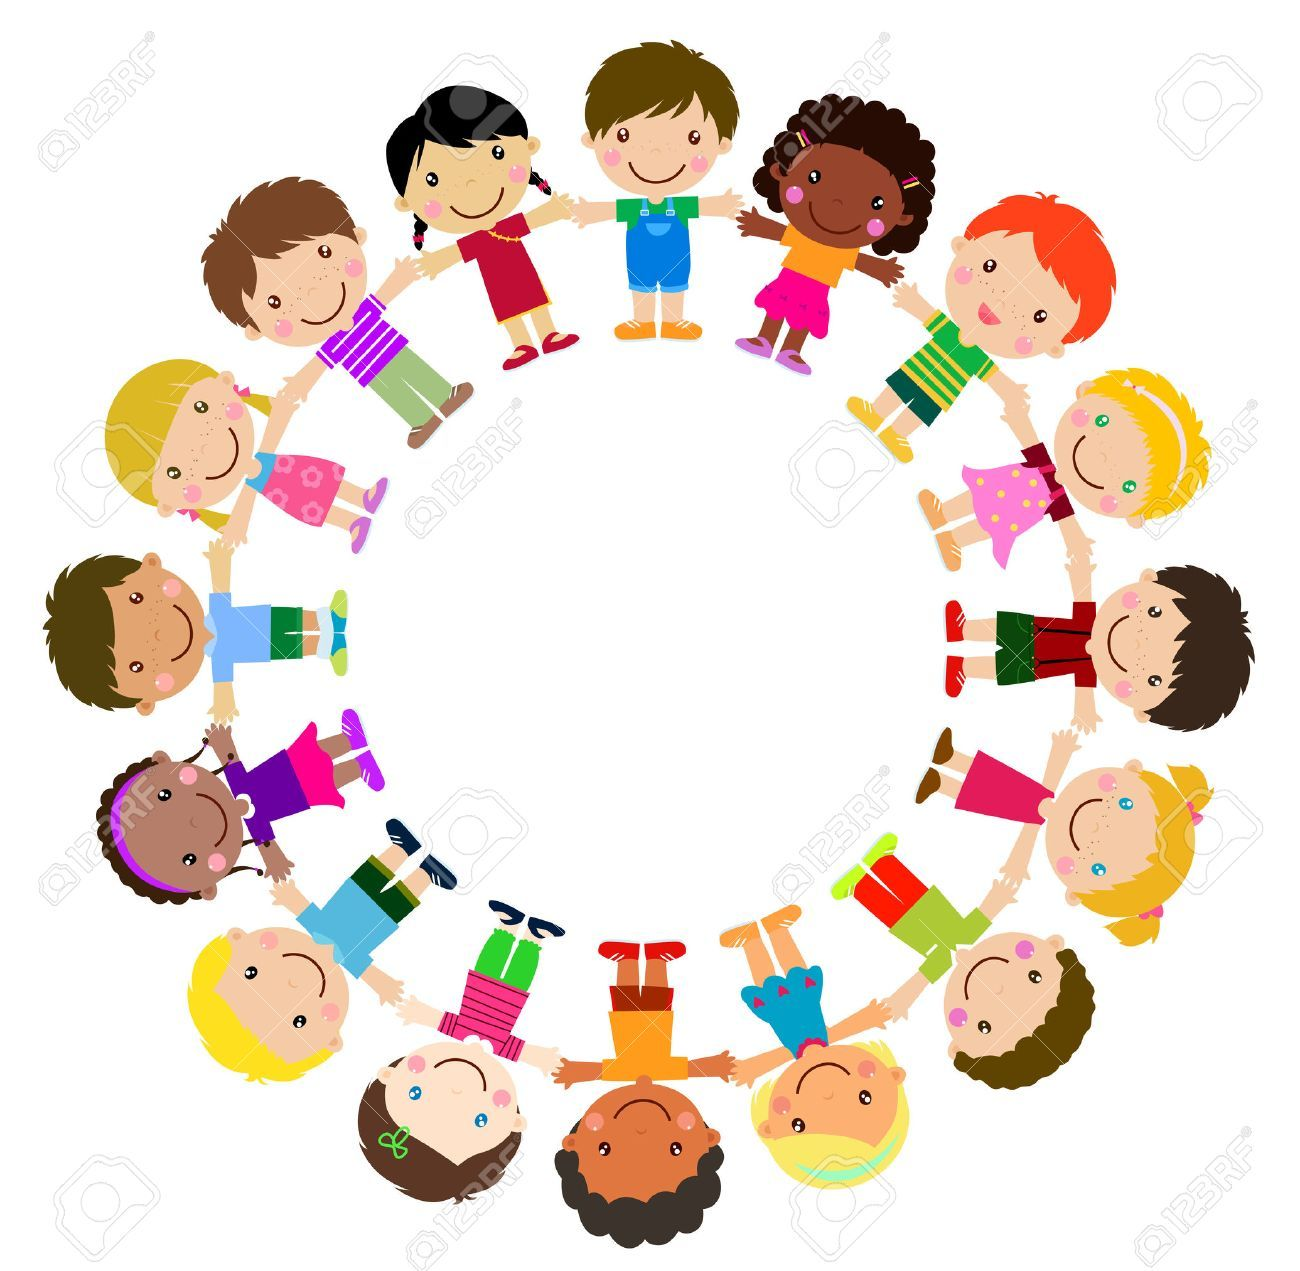 Kids in a circle clipart 2 » Clipart Portal.